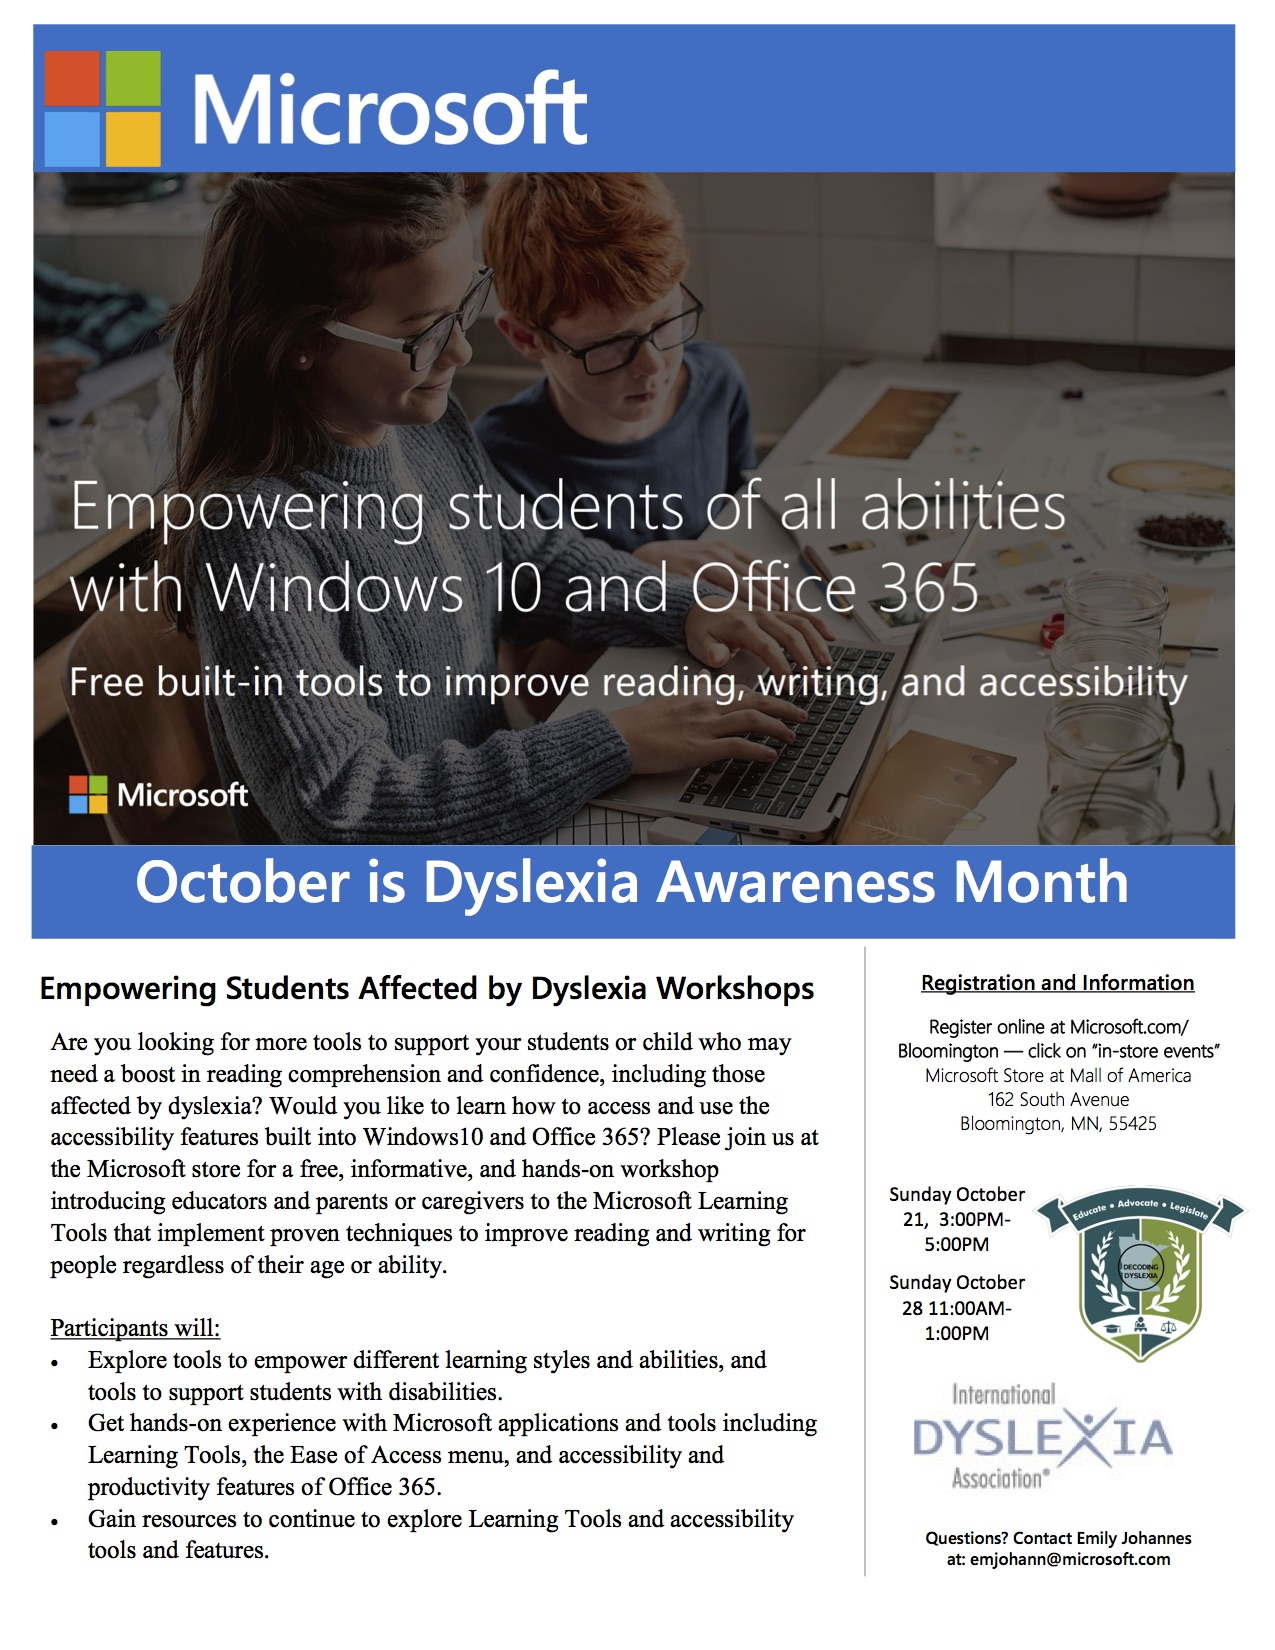 Empowering_Students_Affected_by_Dyslexia_Flyer.jpg